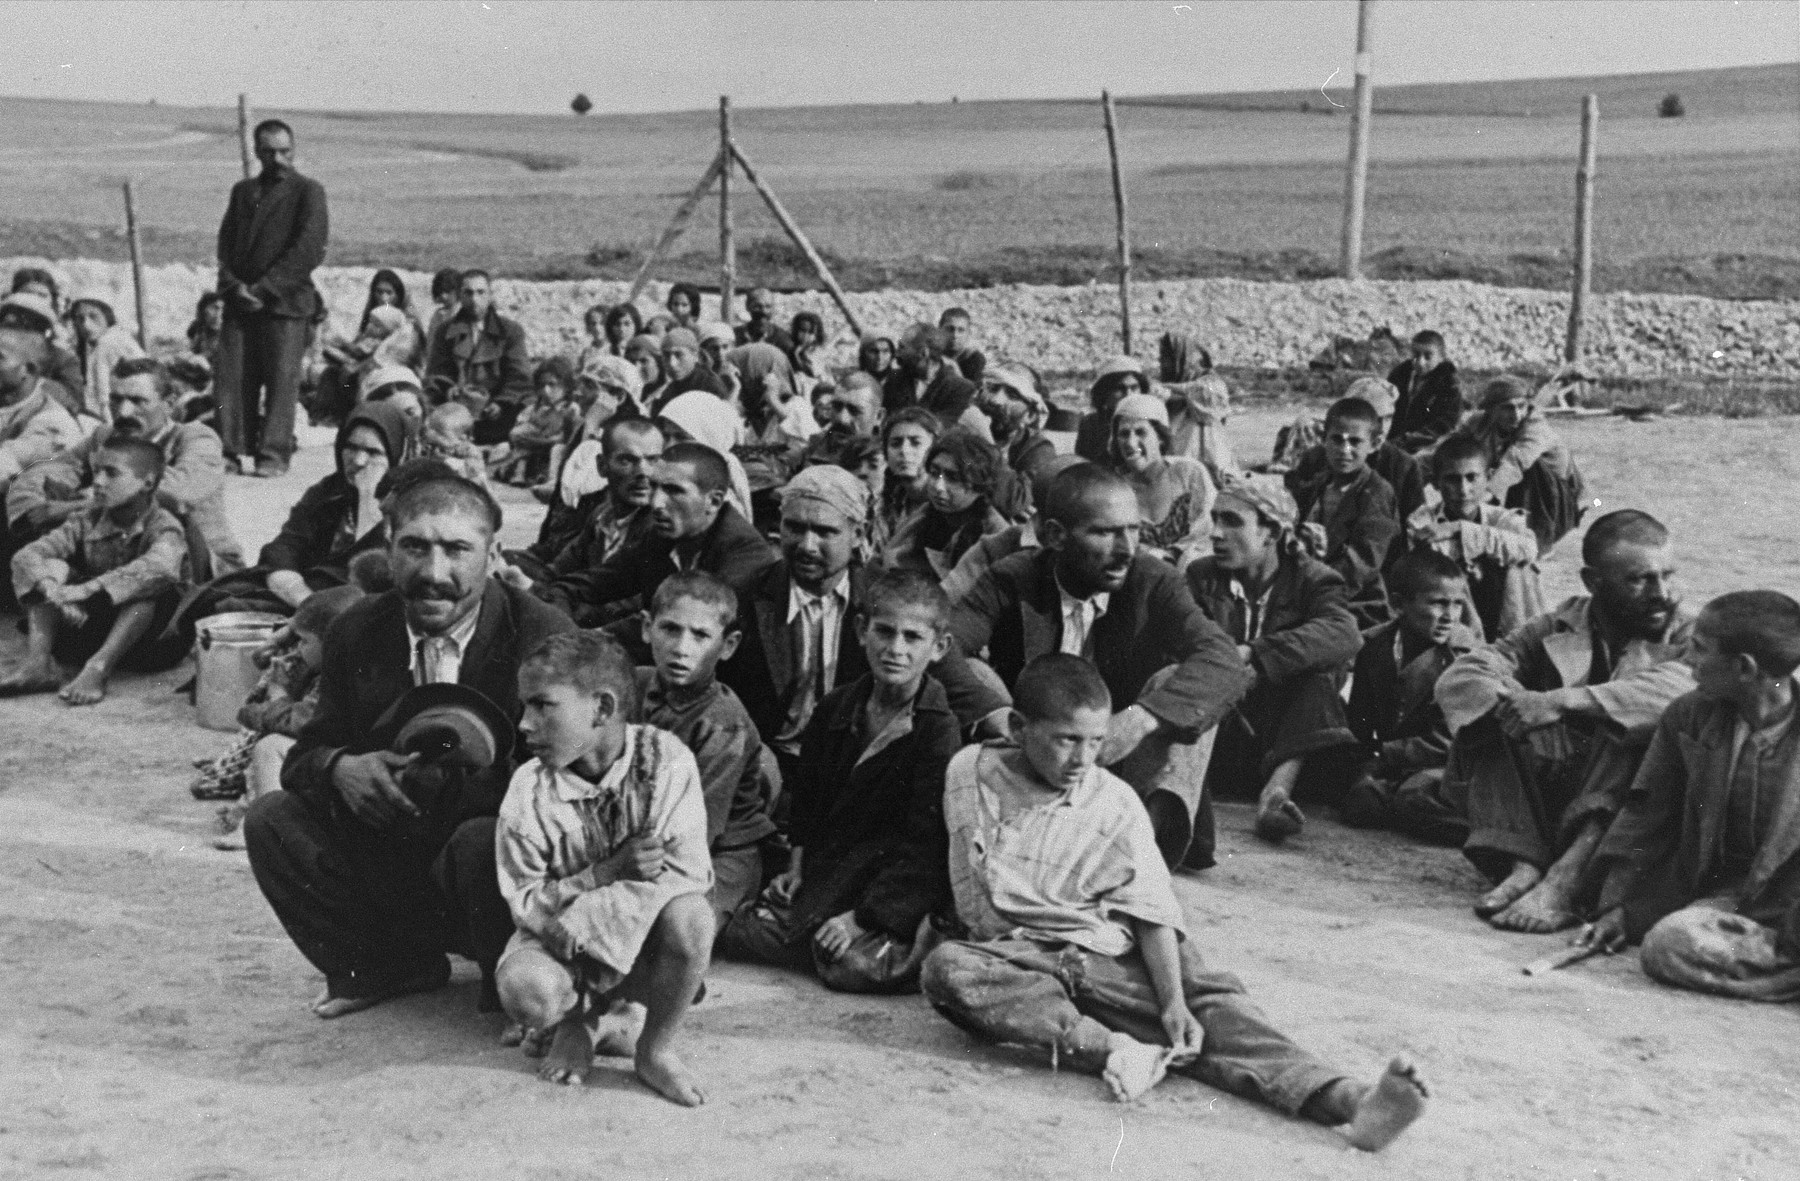 A group of Gypsy prisoners, awaiting instructions from their German captors, sit in an open area near the fence in the Belzec concentration camp.